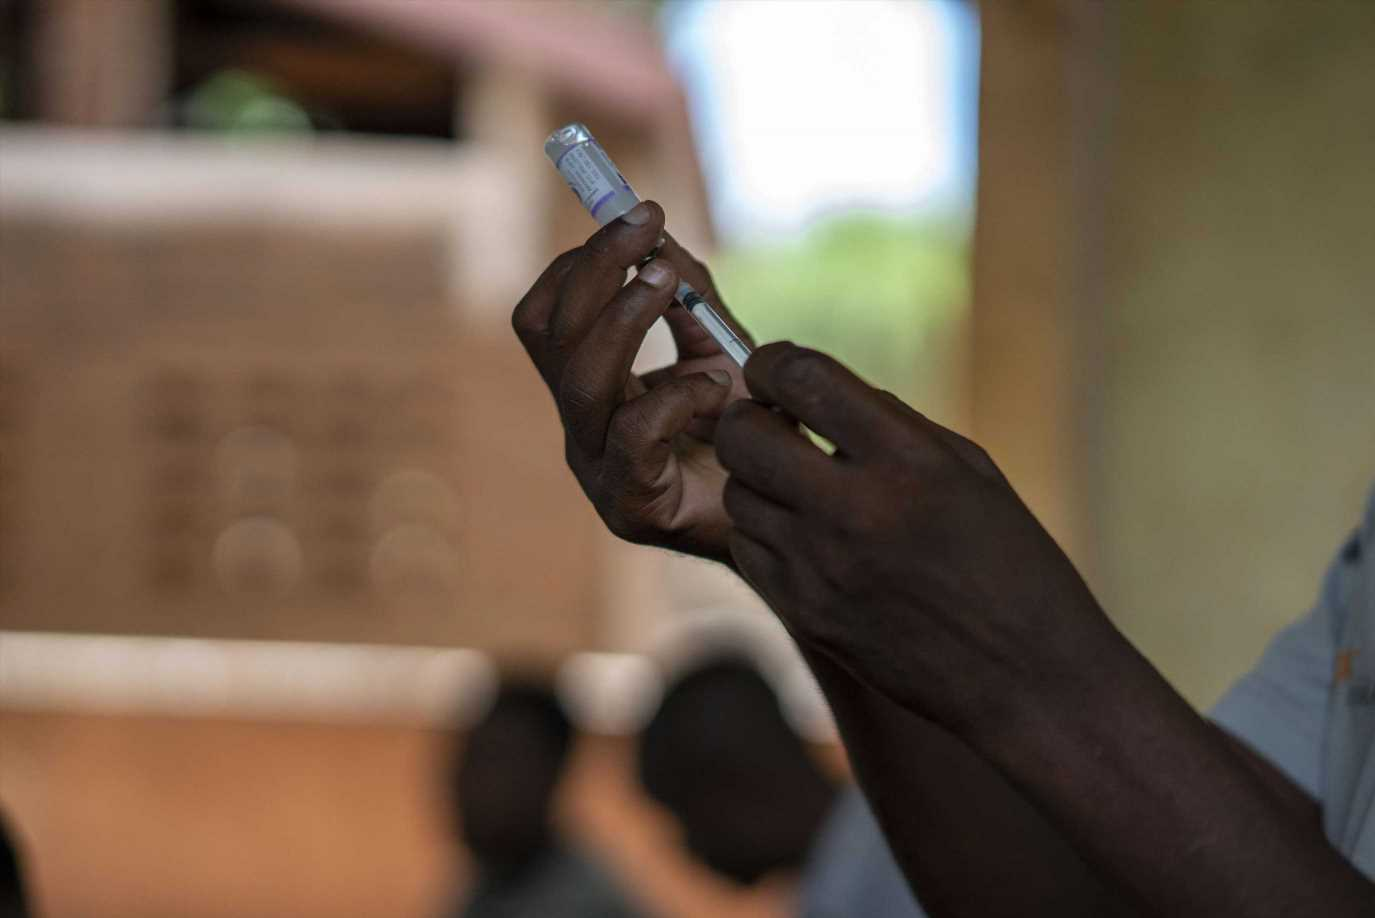 Malaria vaccine will be rolled out to kids in Africa after historic jab gets WHO green light